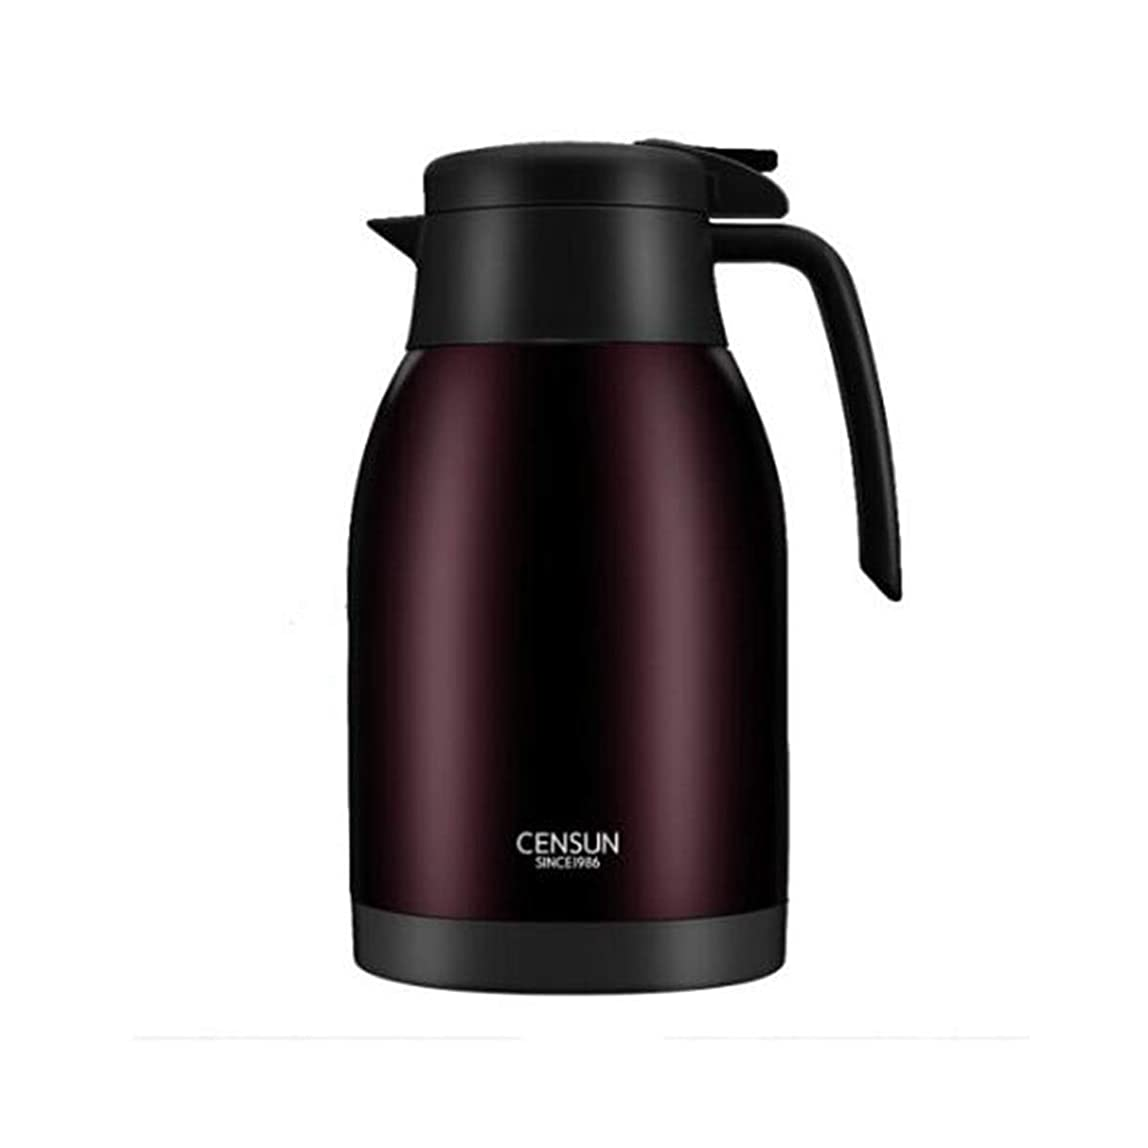 GUYUEXUAN Kettle, Stainless Steel Insulated Pot, Household Thermos, Kettle, 1.5L Insulated Kettle, Insulation, Anti-scalding, Non-slip, Household, Foam Powder Good quality and durability ixnwaqs388571